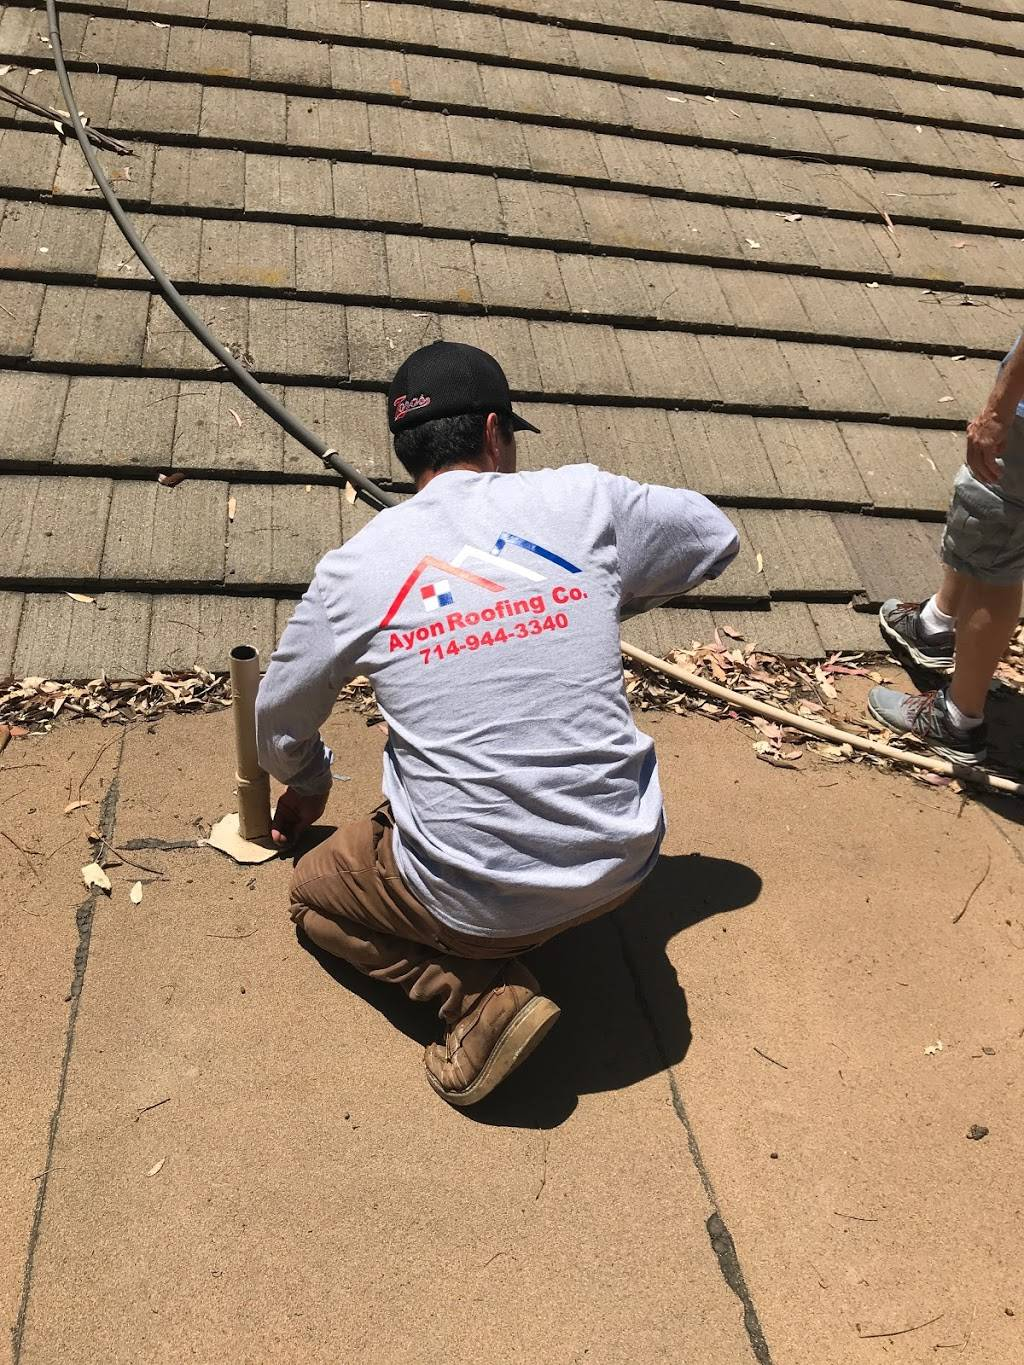 Ayon's Roofing - roofing contractor  | Photo 2 of 8 | Address: 1713 E Sycamore St, Anaheim, CA 92805, USA | Phone: (714) 944-3340